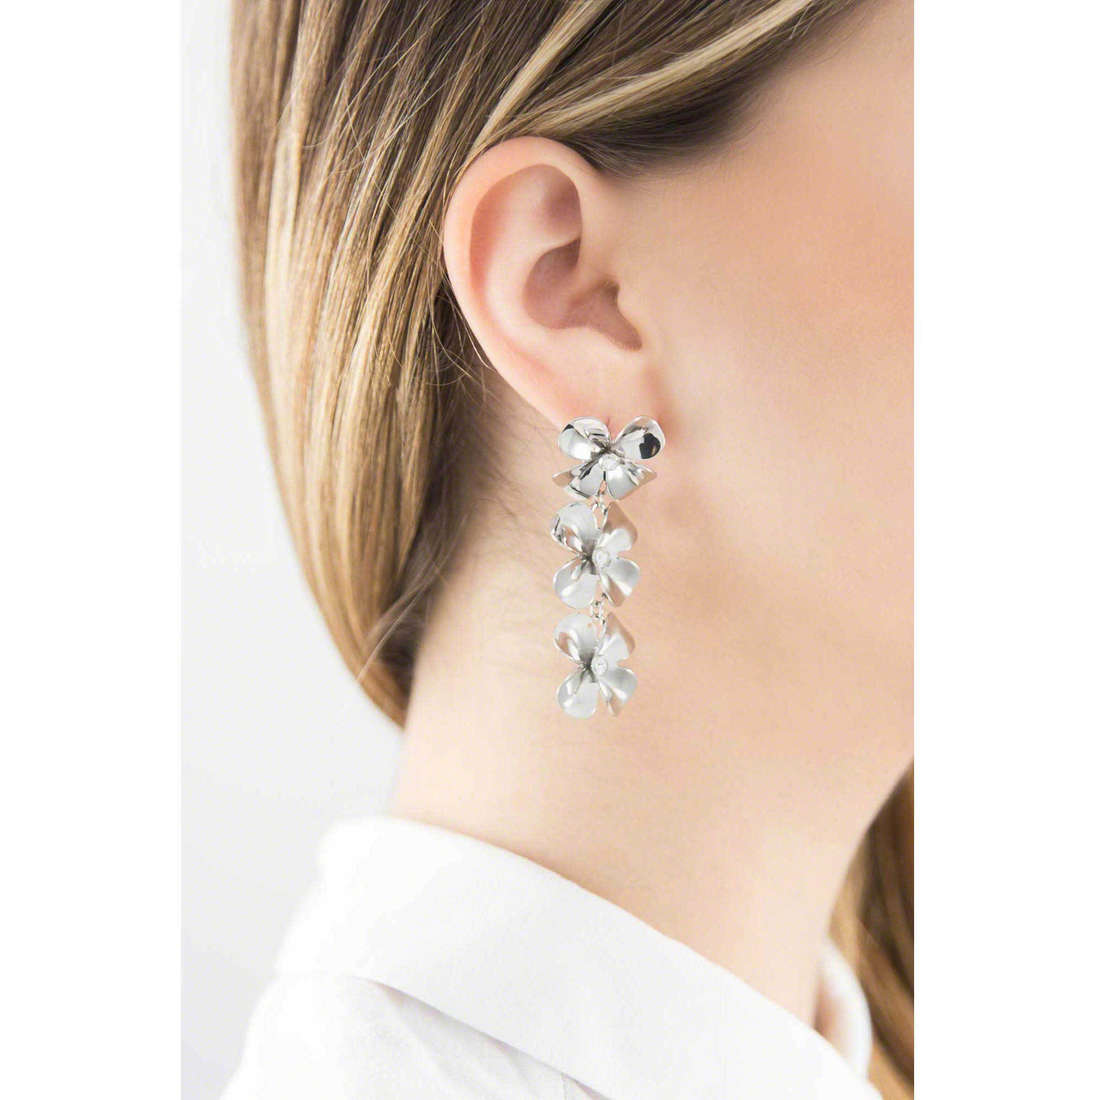 Brosway boucles d'oreille Jasmine femme BJN21 indosso